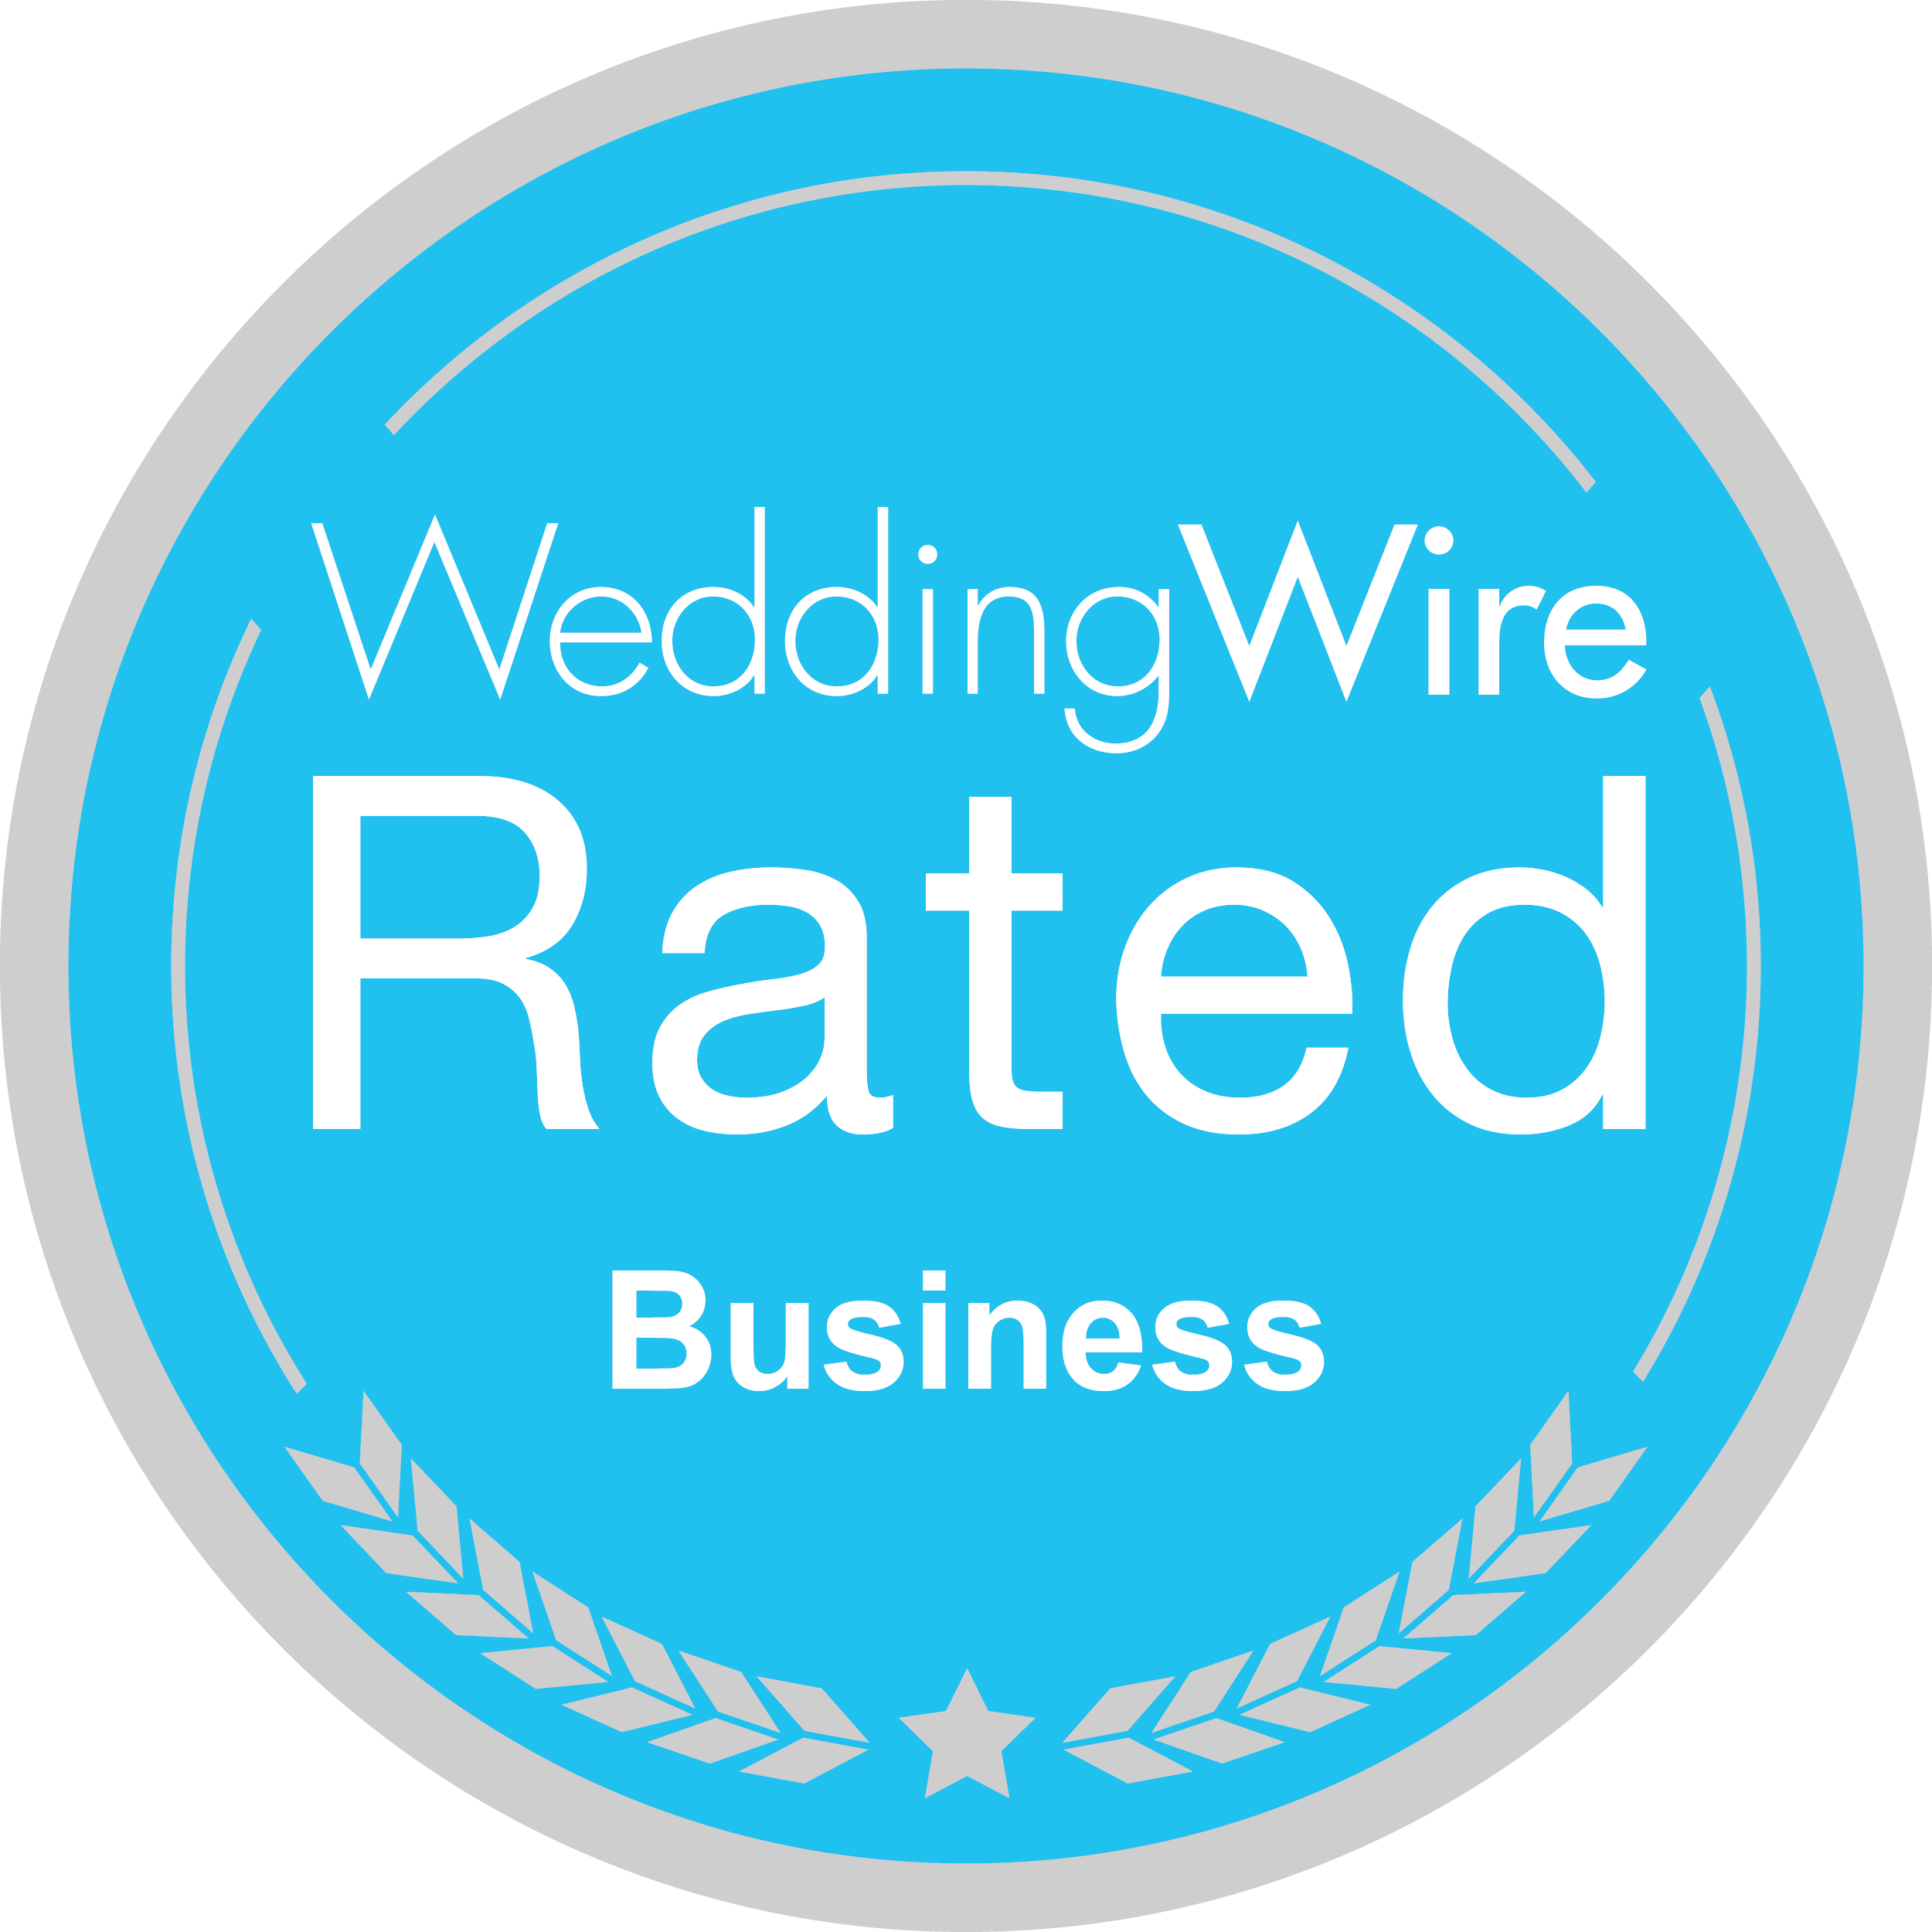 Cape Town wedding planner,As listed on Wedding Wire